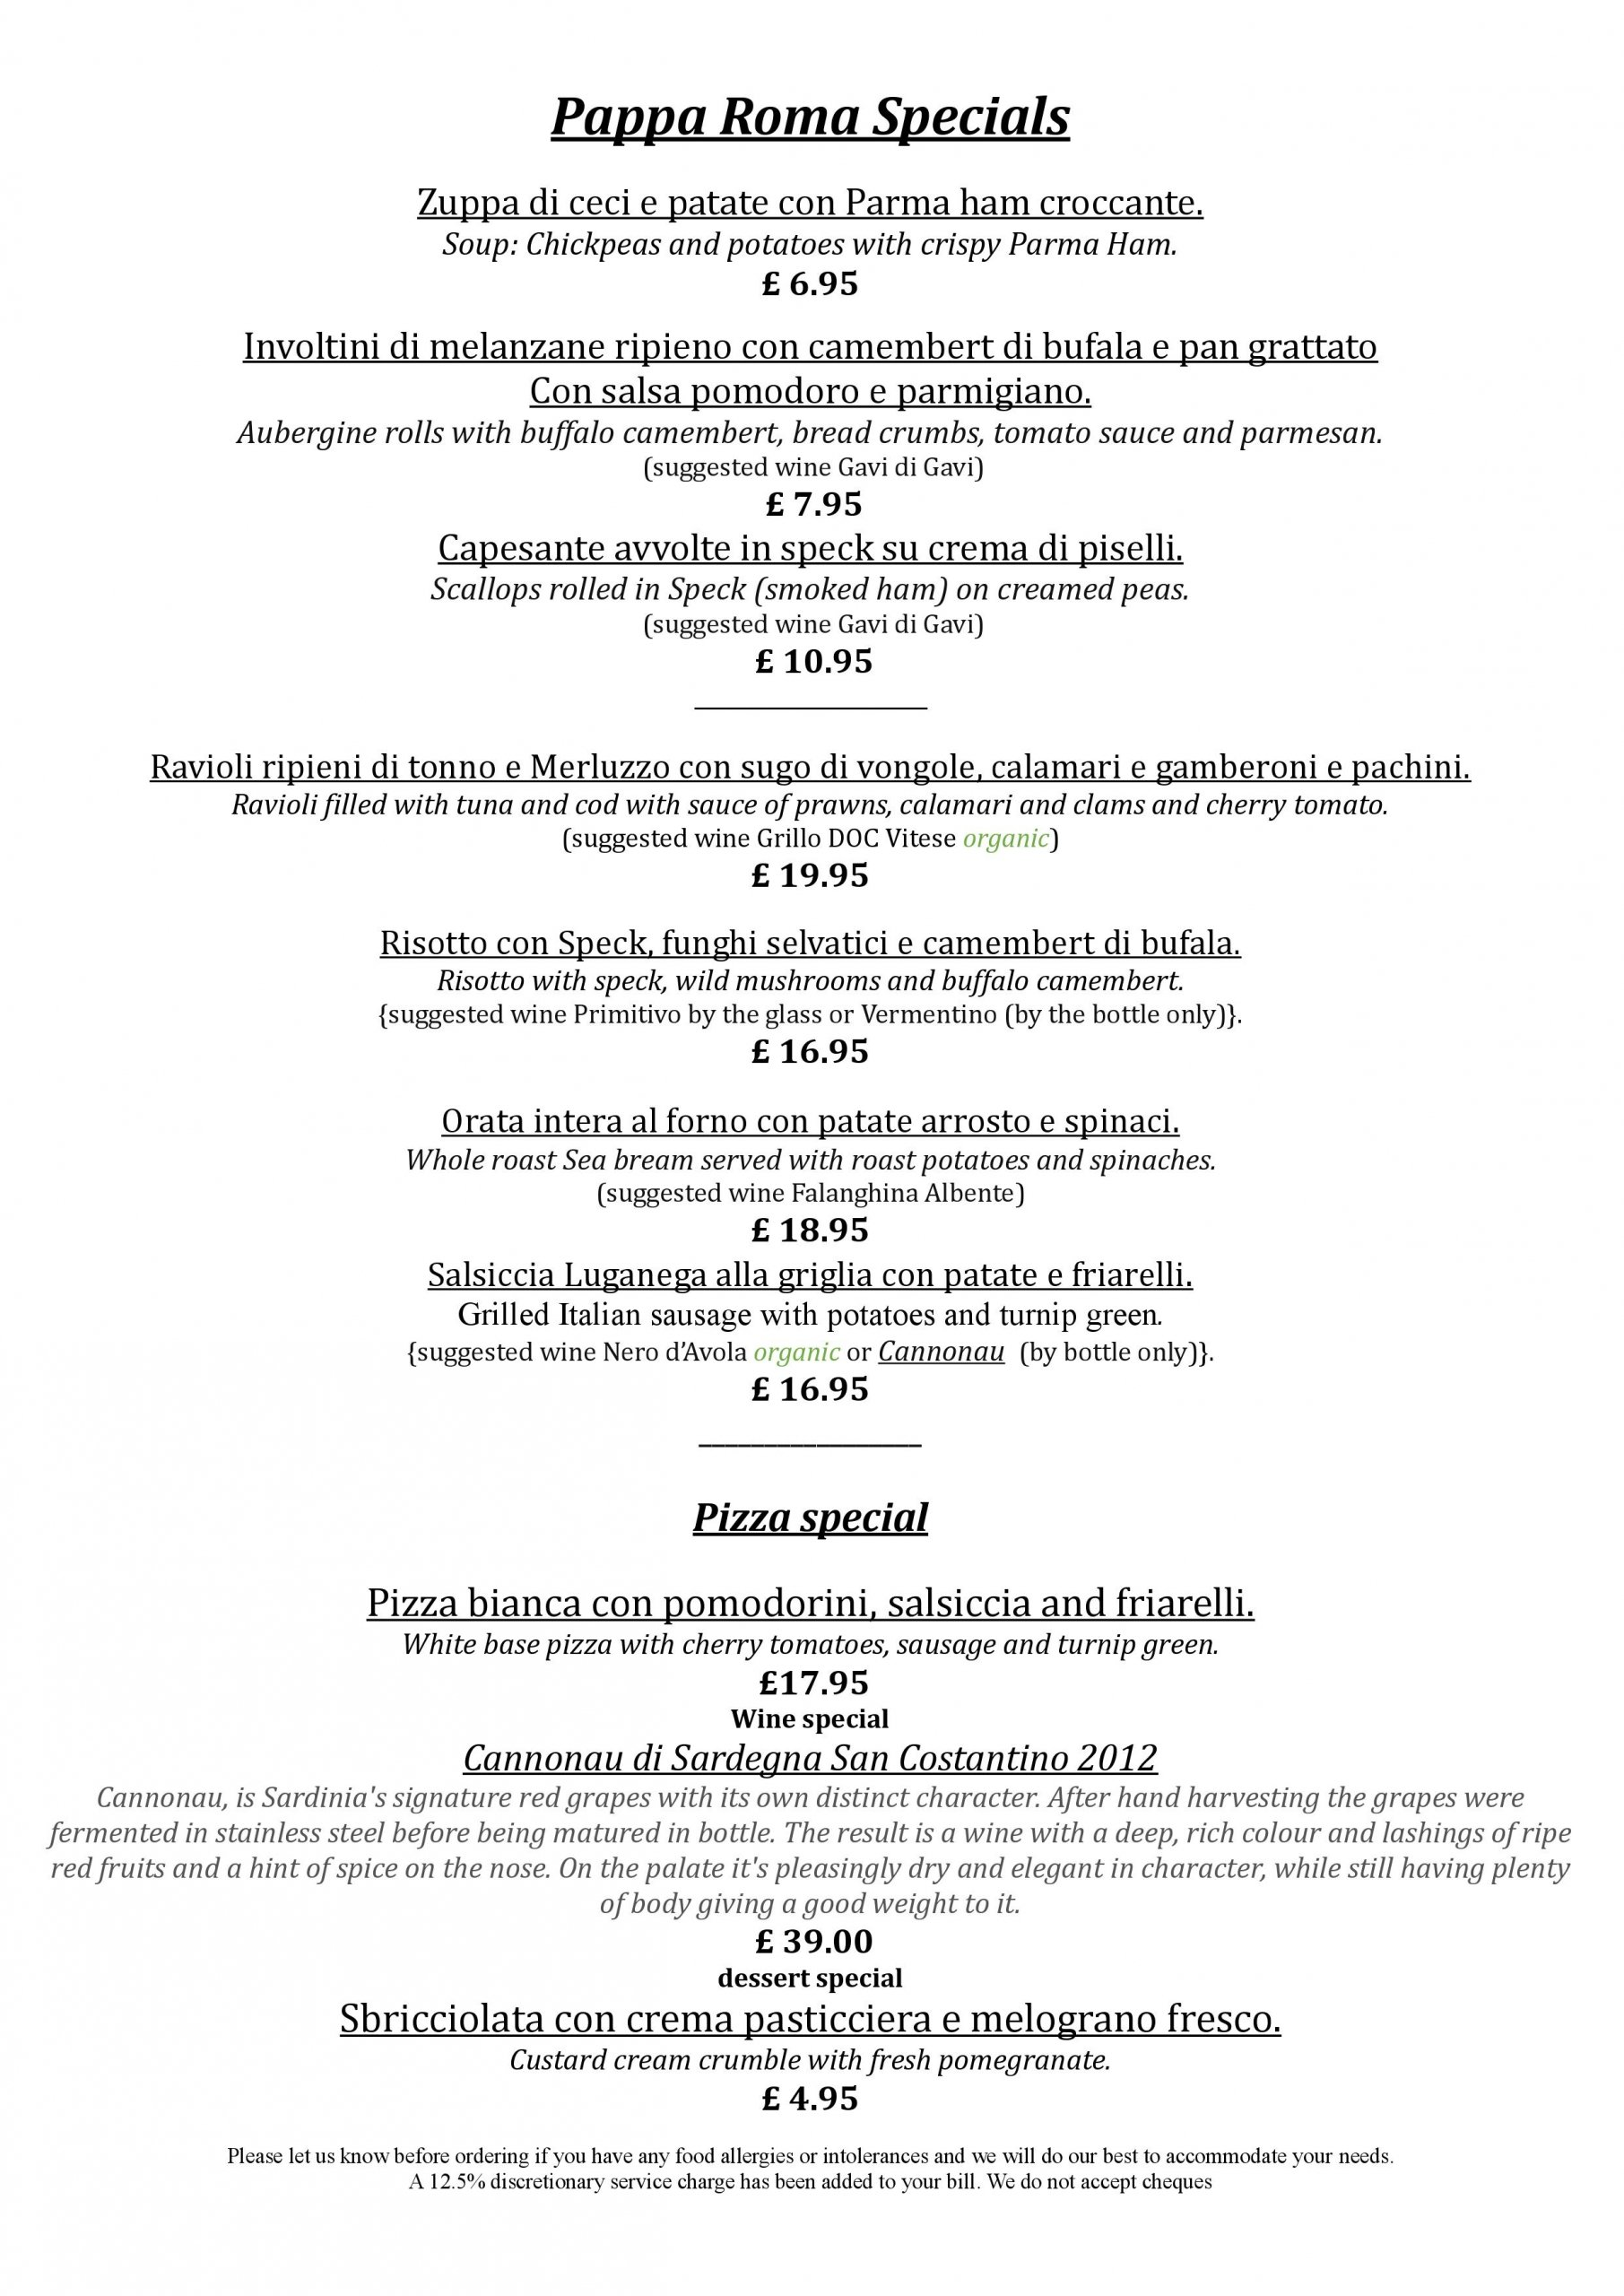 Pappa Roma February Food Specials